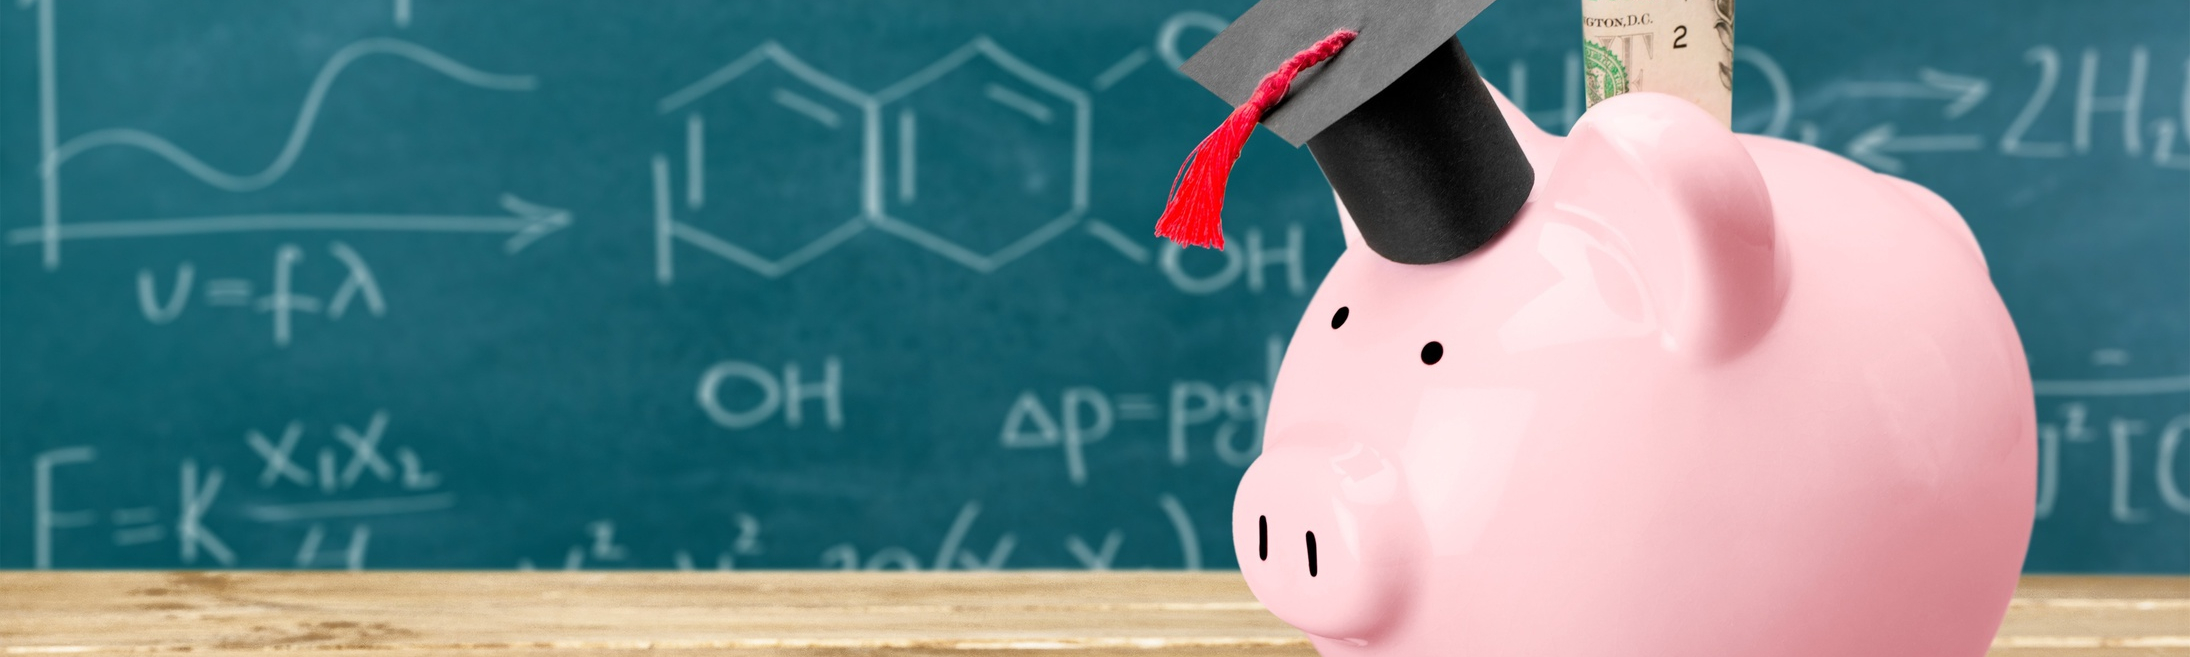 A piggy bank with a doctoral cap stands in front of a blackboard with scientific equations